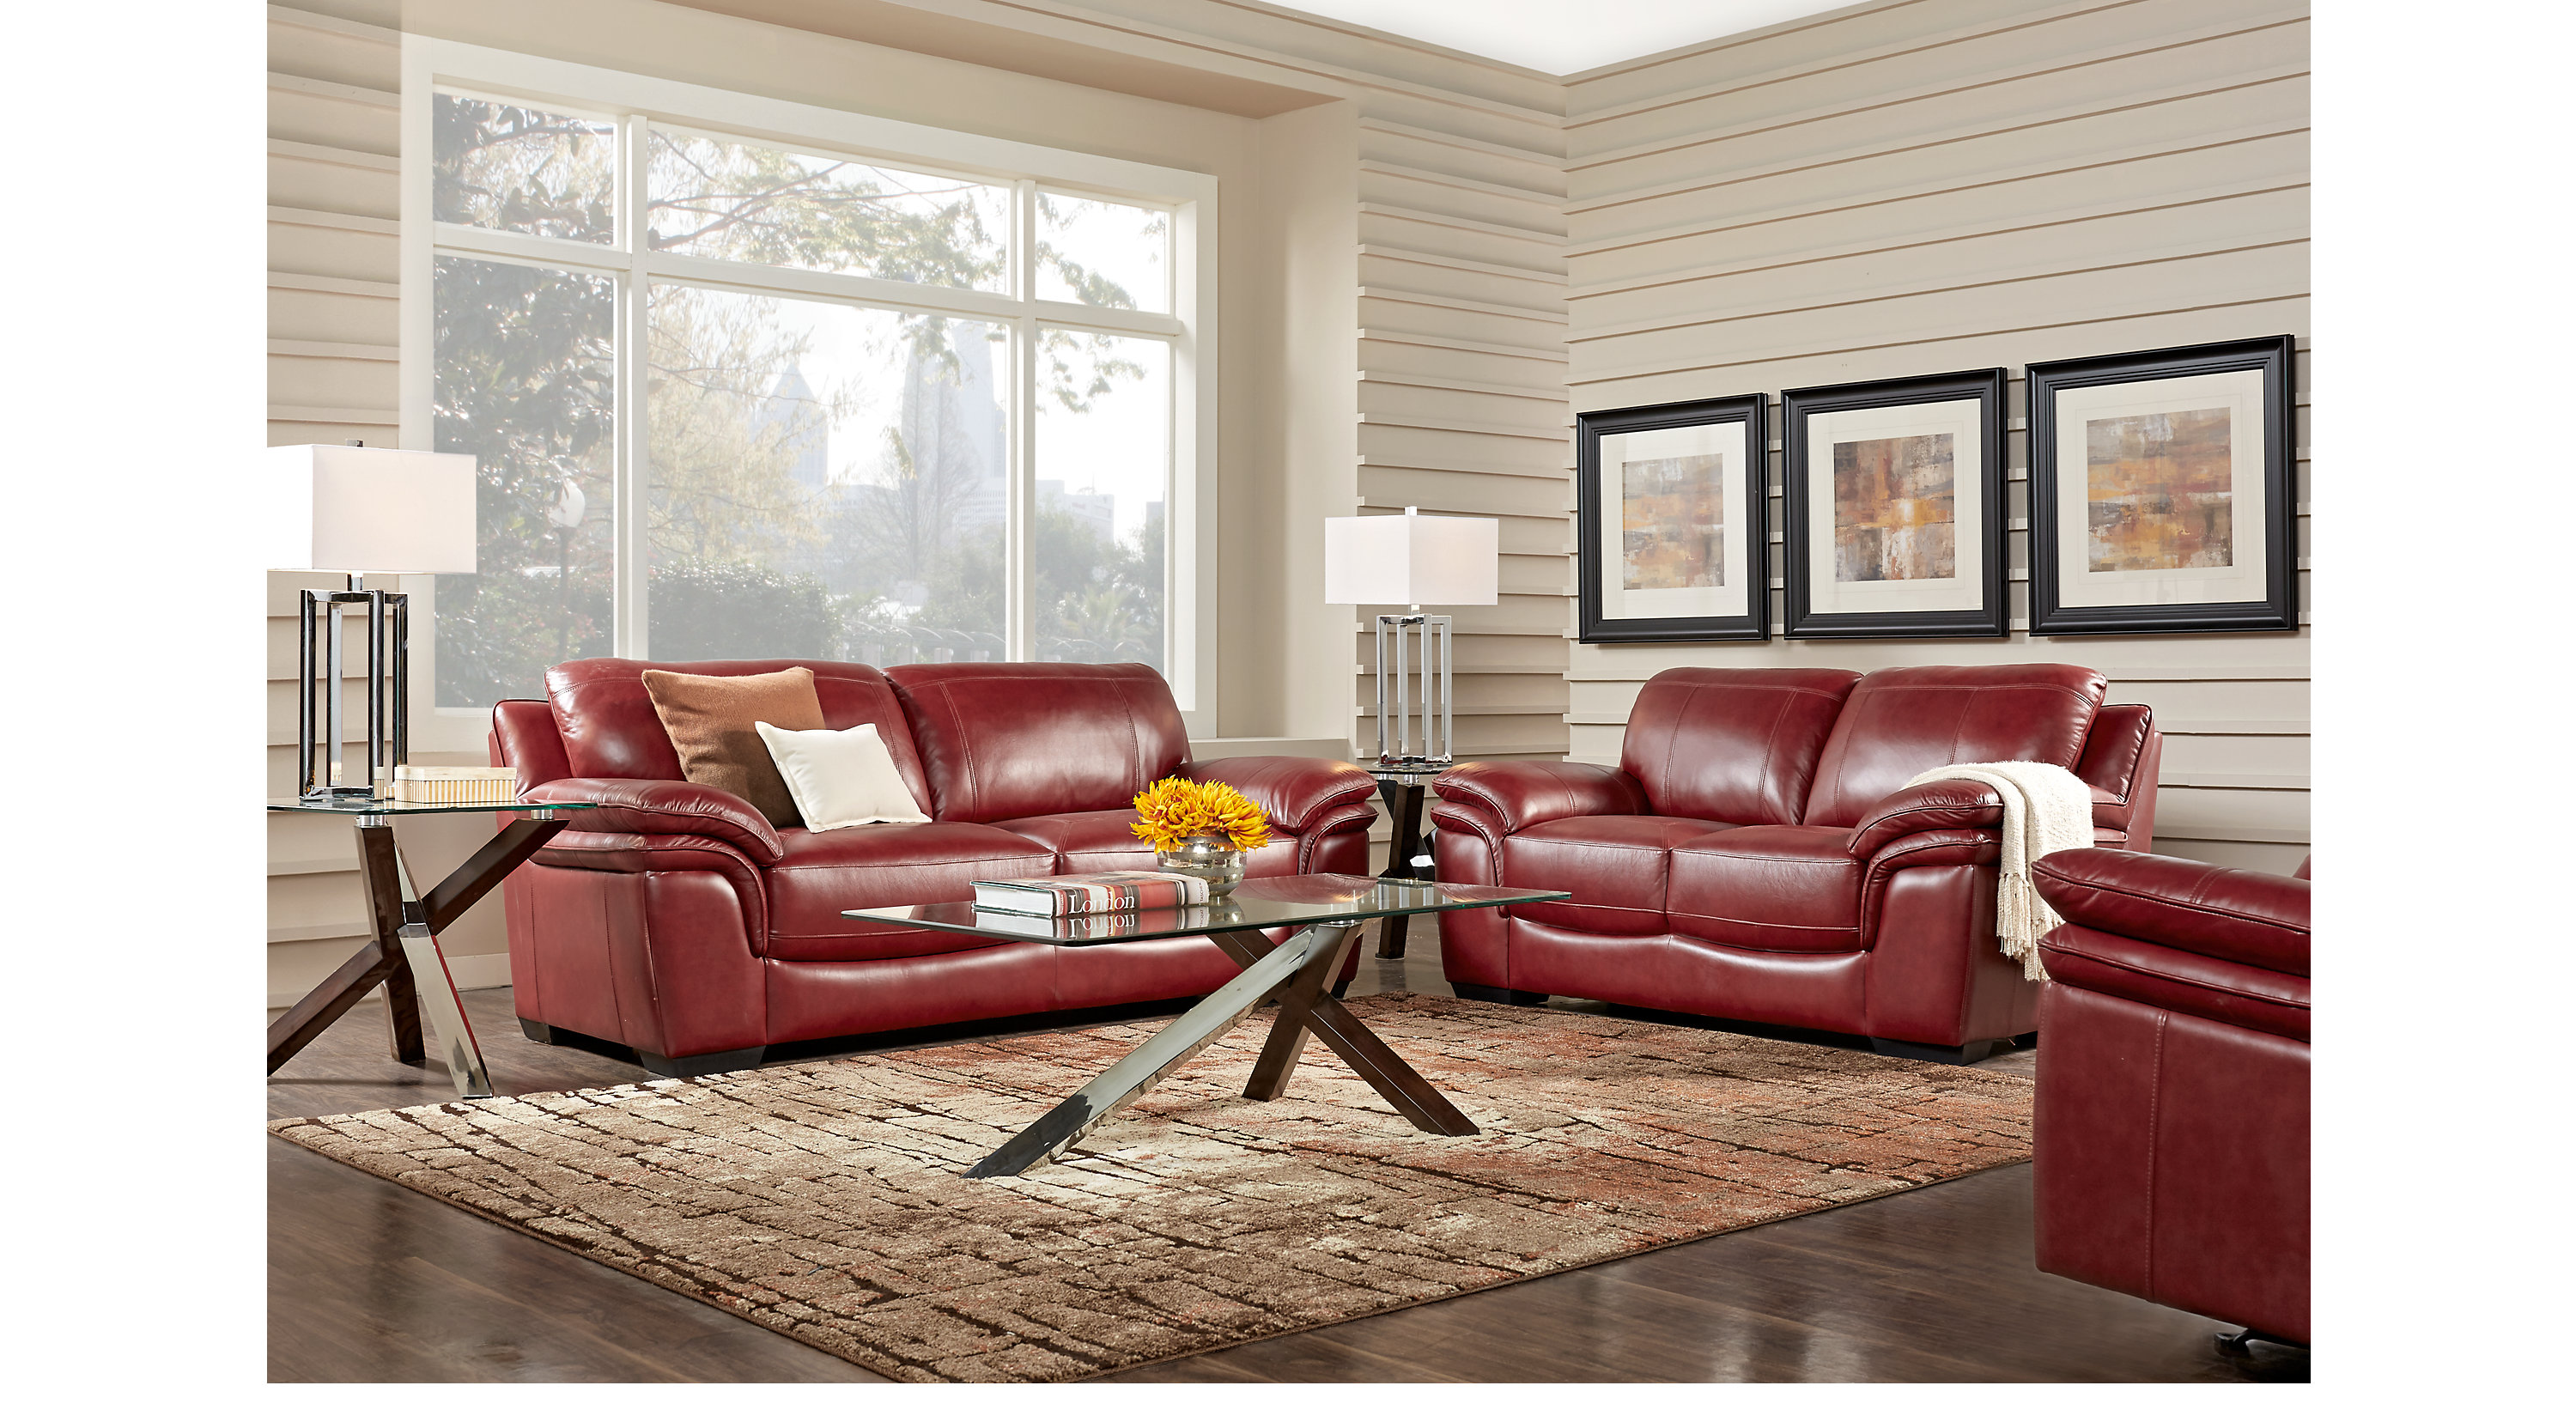 $2,299.99 - Grand Palazzo Red 3 Pc Leather Living Room - Classic ...